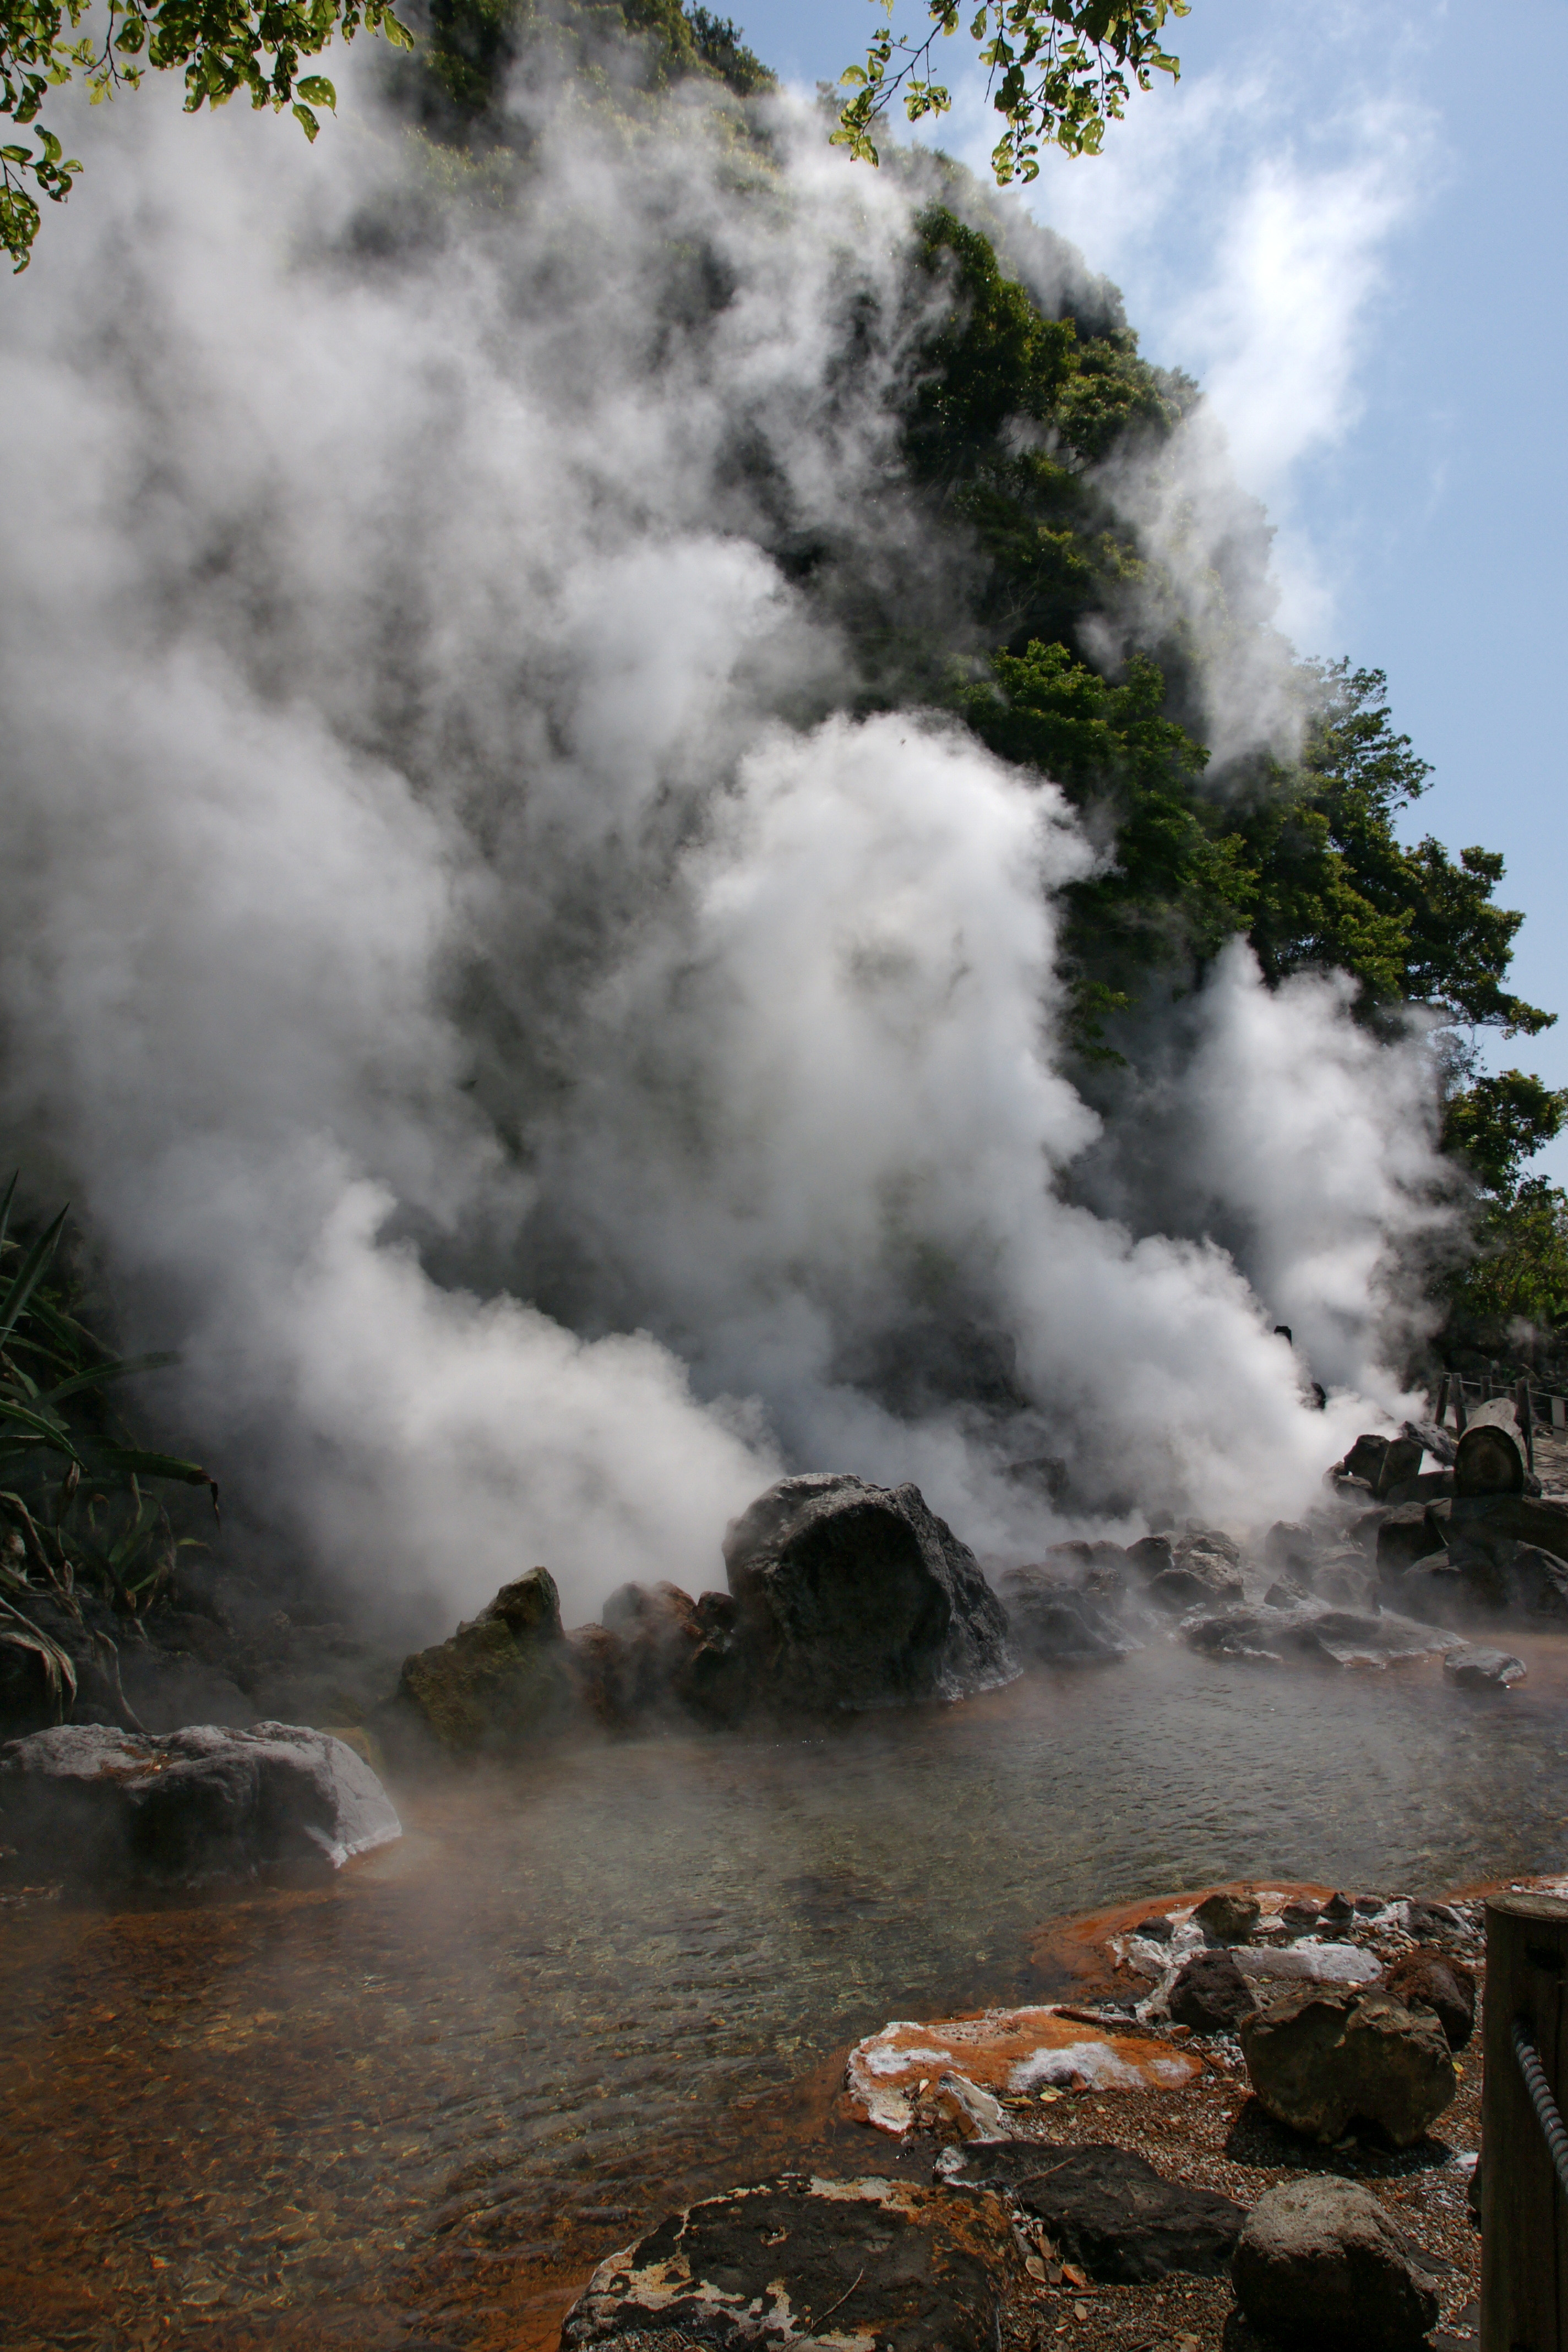 Relaxing in a hotspring may be more fun than dexascan testing, but it won't improve your bone health.